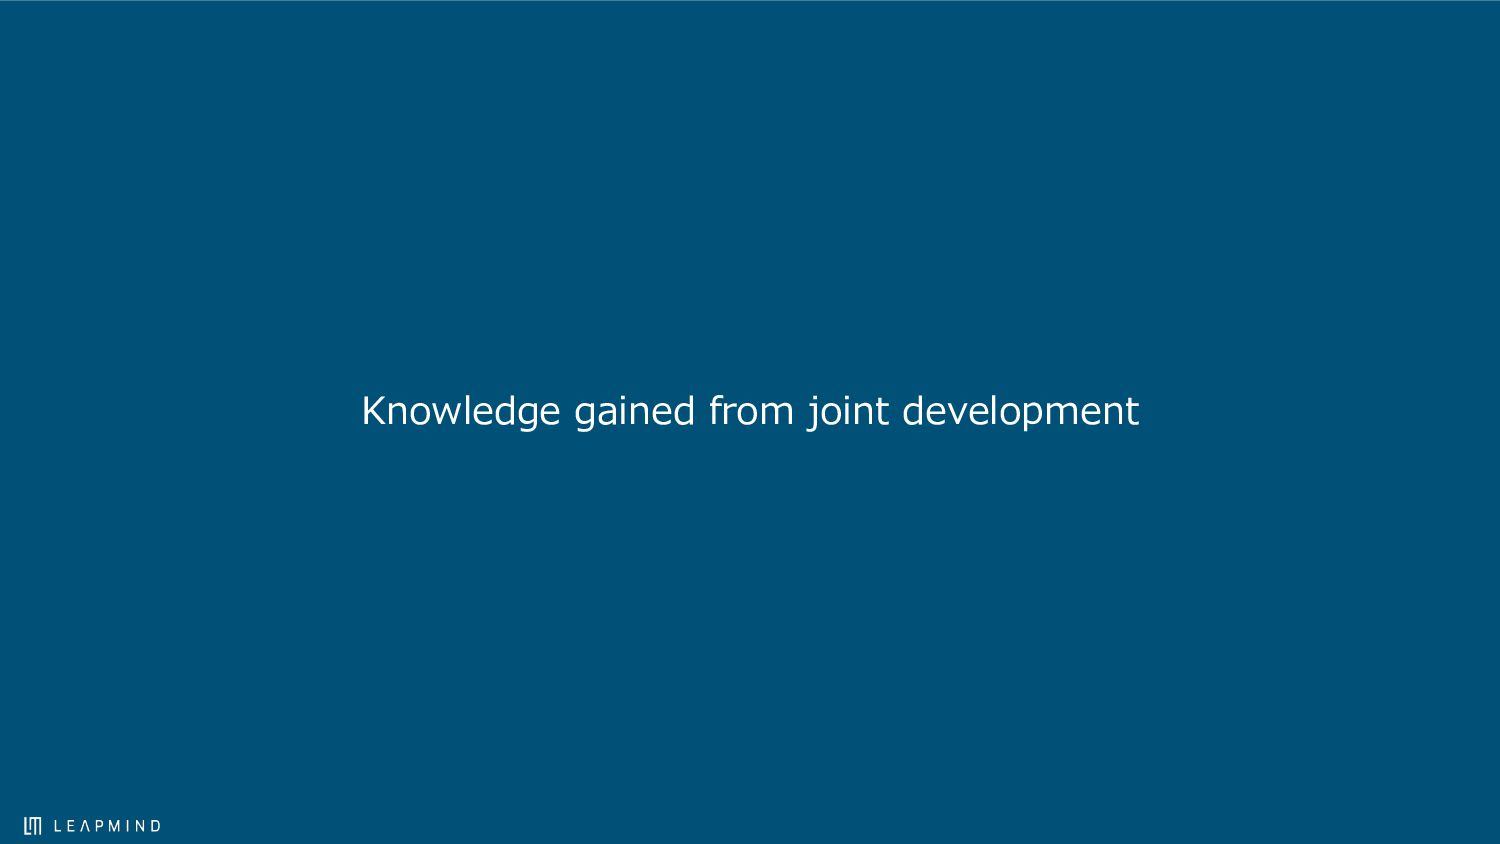 Knowledge gained from joint development